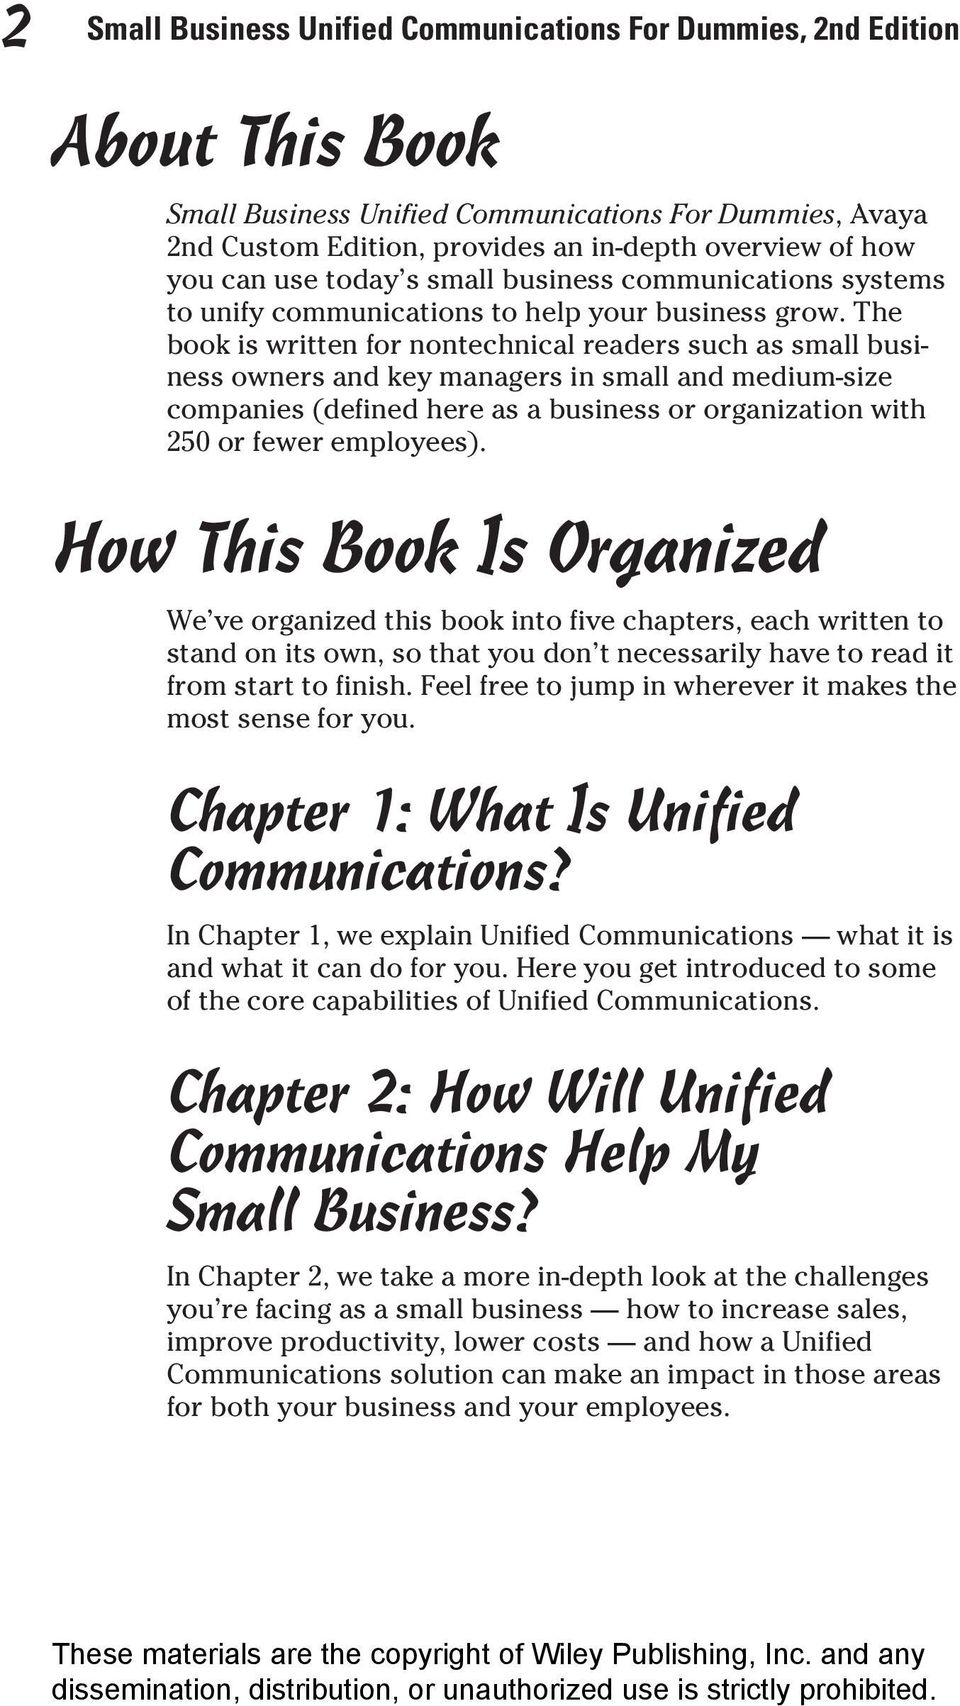 The book is written for nontechnical readers such as small business owners and key managers in small and medium-size companies (defined here as a business or organization with 250 or fewer employees).